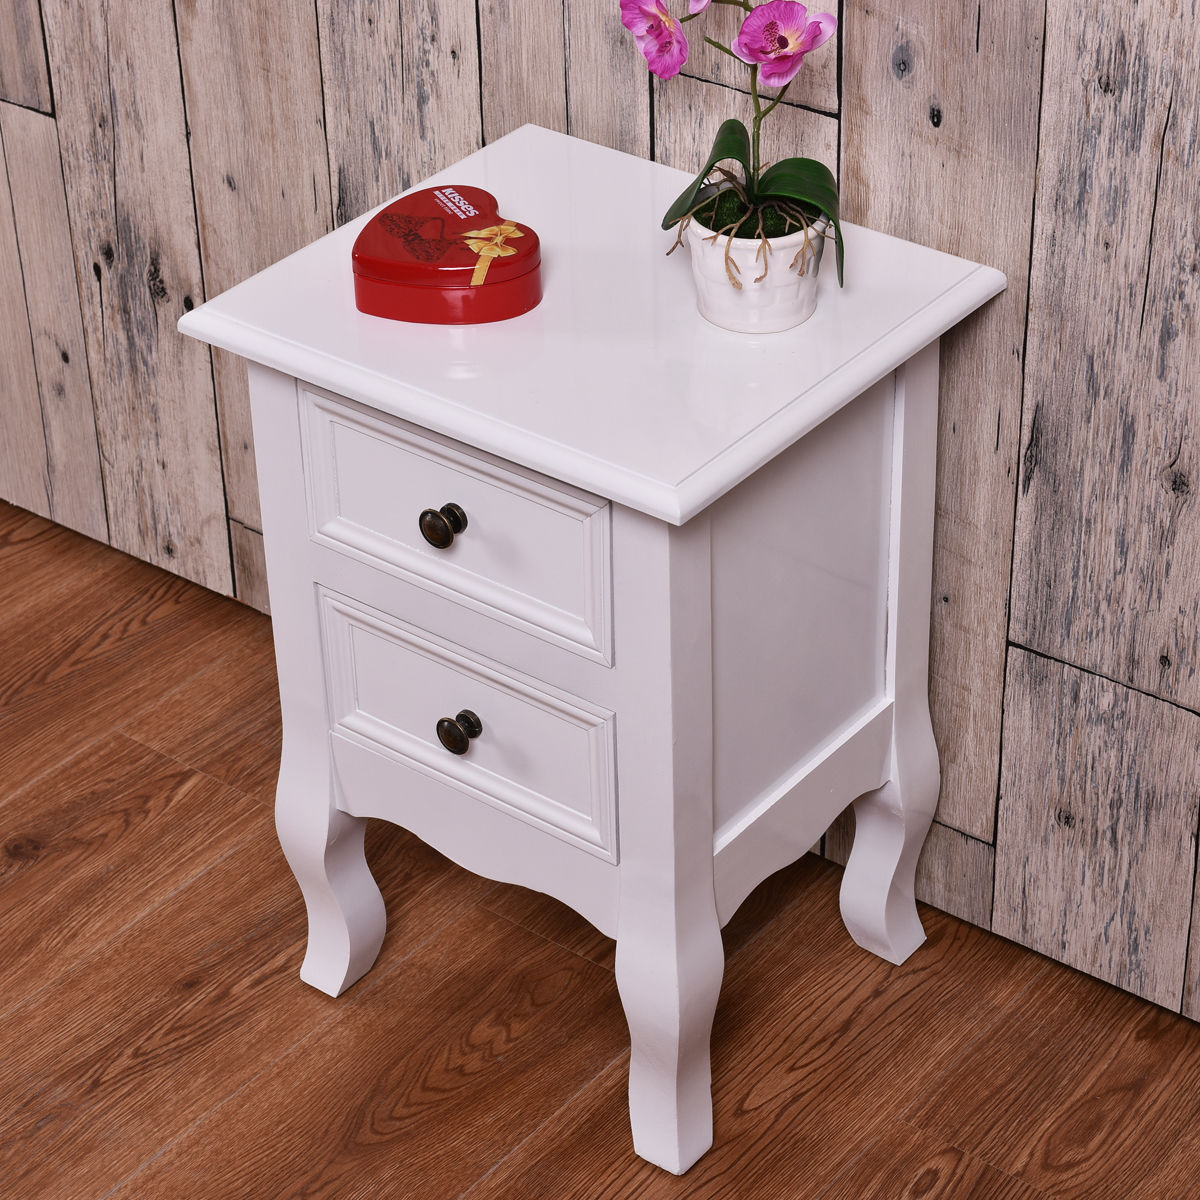 giantex white curved legs accent side end table modern nigh stand bedroom furniture with drawers nightstand tables nightstands from rustic wood patio storage outdoor pillows inch